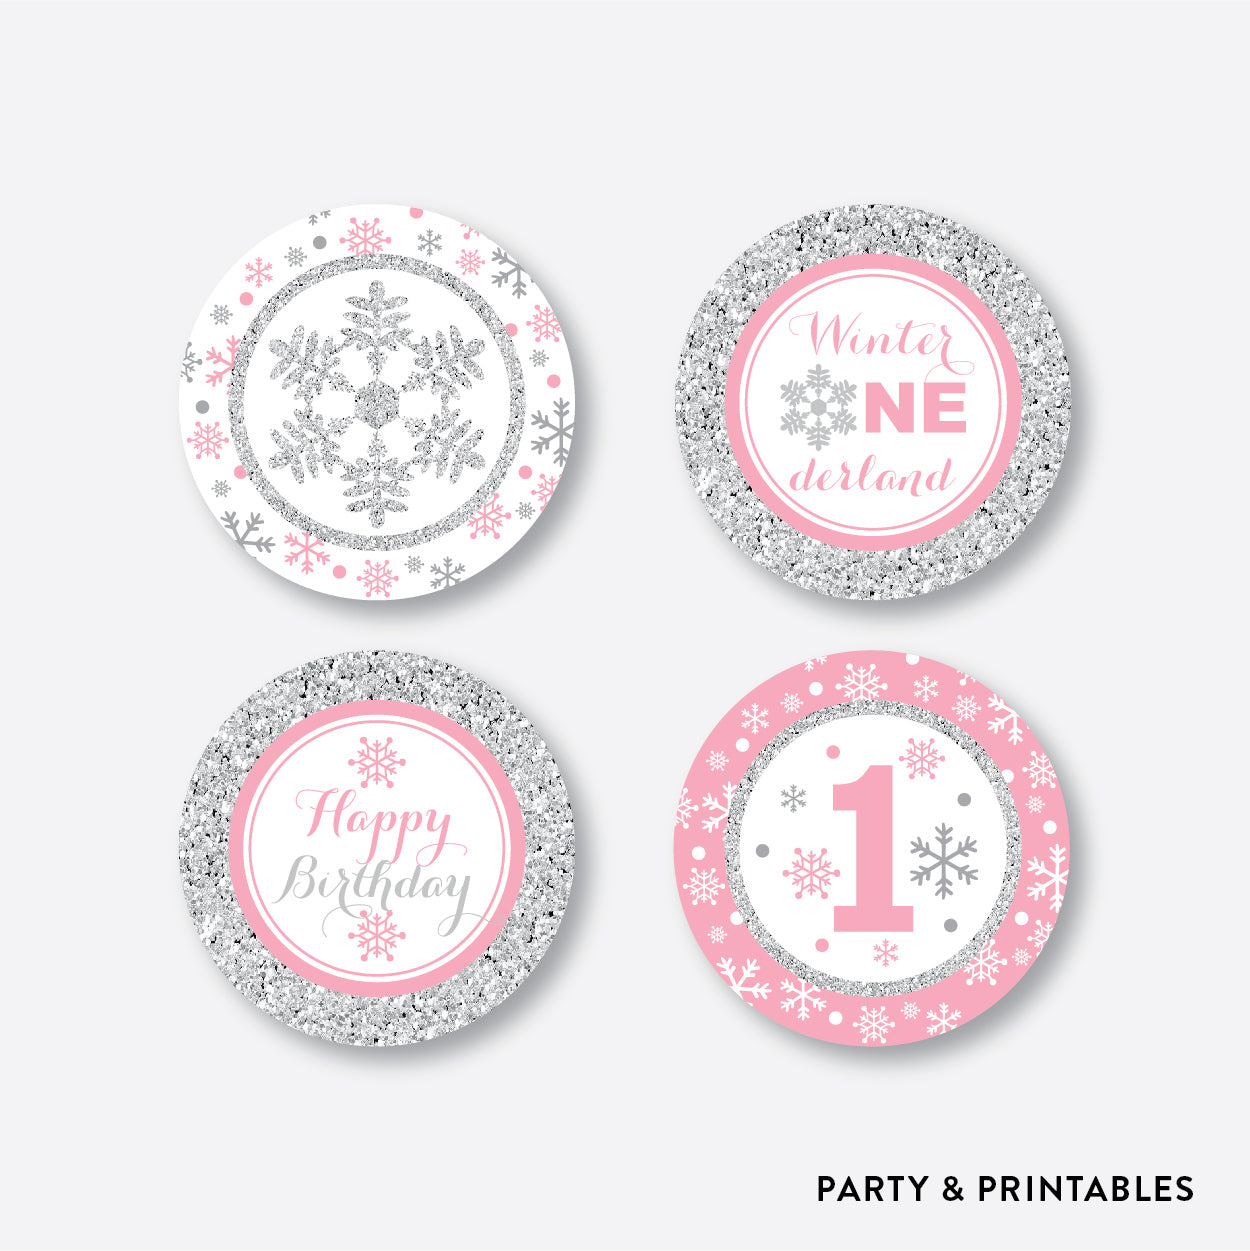 Winter Wonderland Cupcake Toppers / Non-Personalized / Instant Download (GKB.02), party printables - Party and Printables